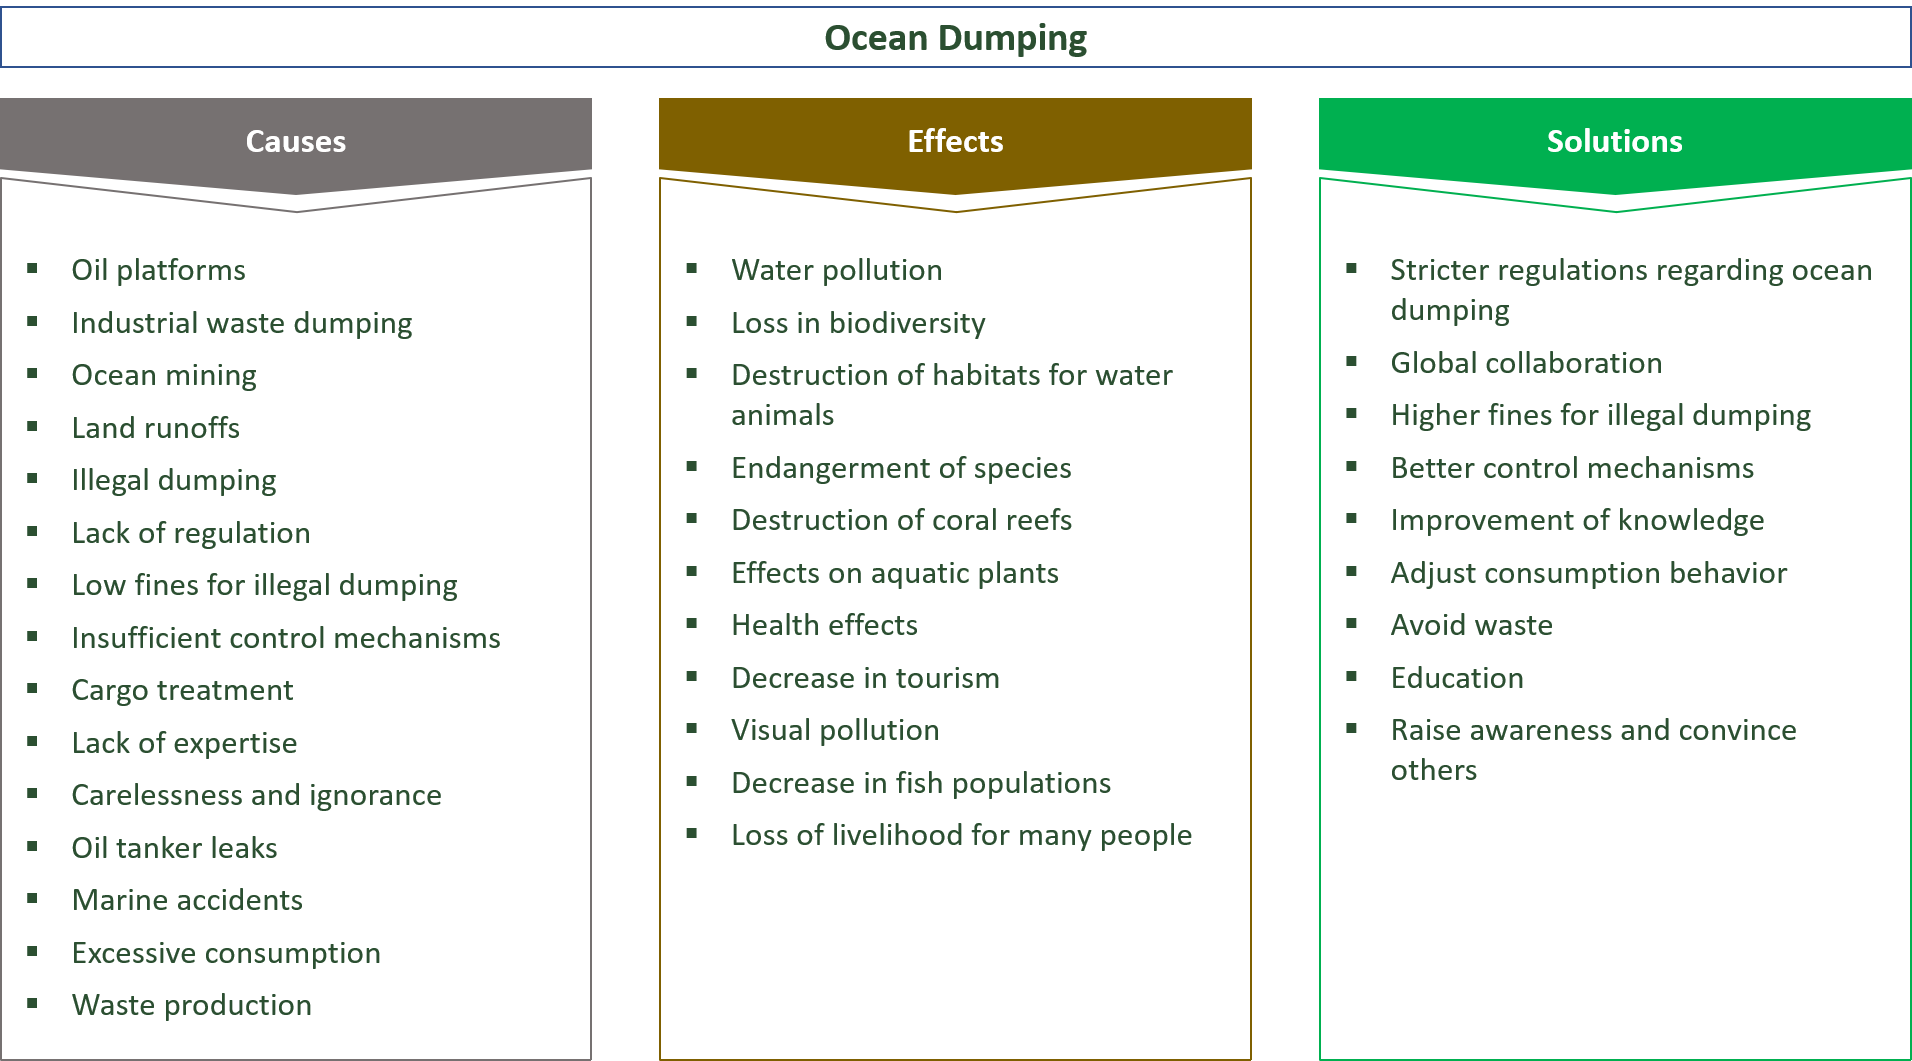 causes, effects and solutions for ocean dumping